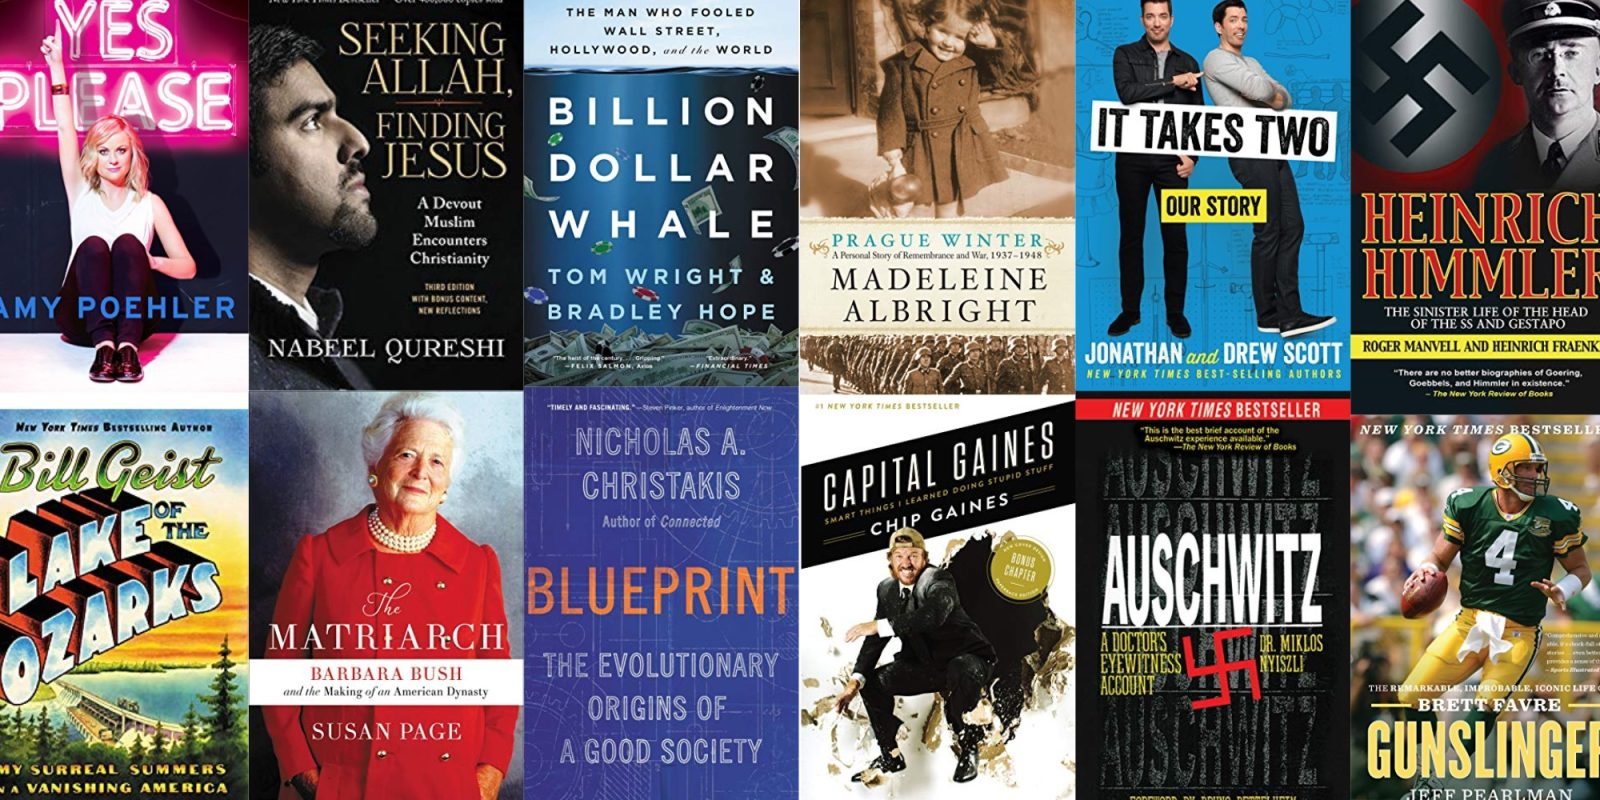 Expand your Kindle library w/ New York Times best-selling eBooks from $1, more